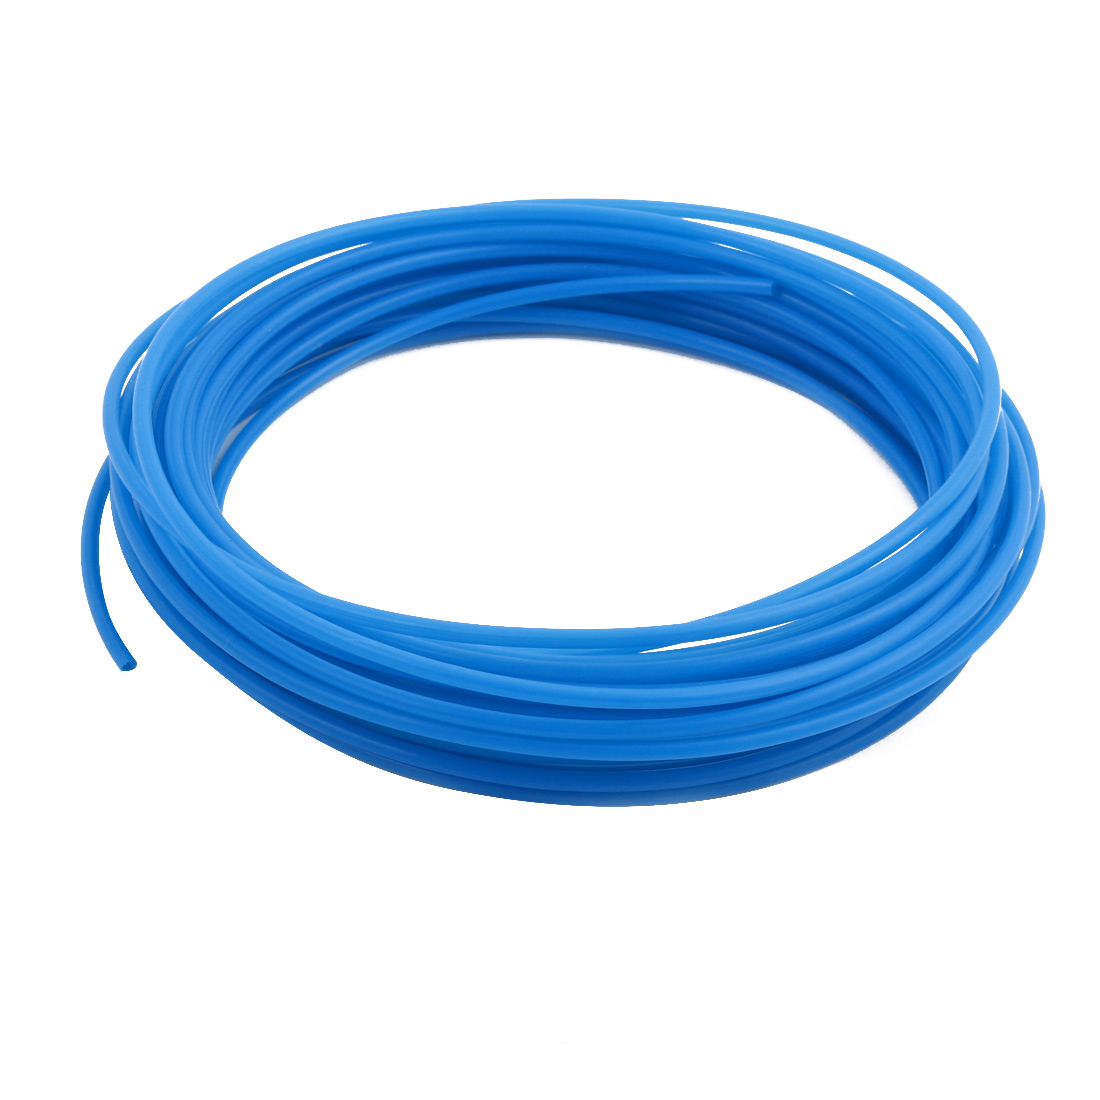 2.41mmx2.81mm PTFE Resistant High Temperature Blue Tubing 10 Meters 32.8Ft